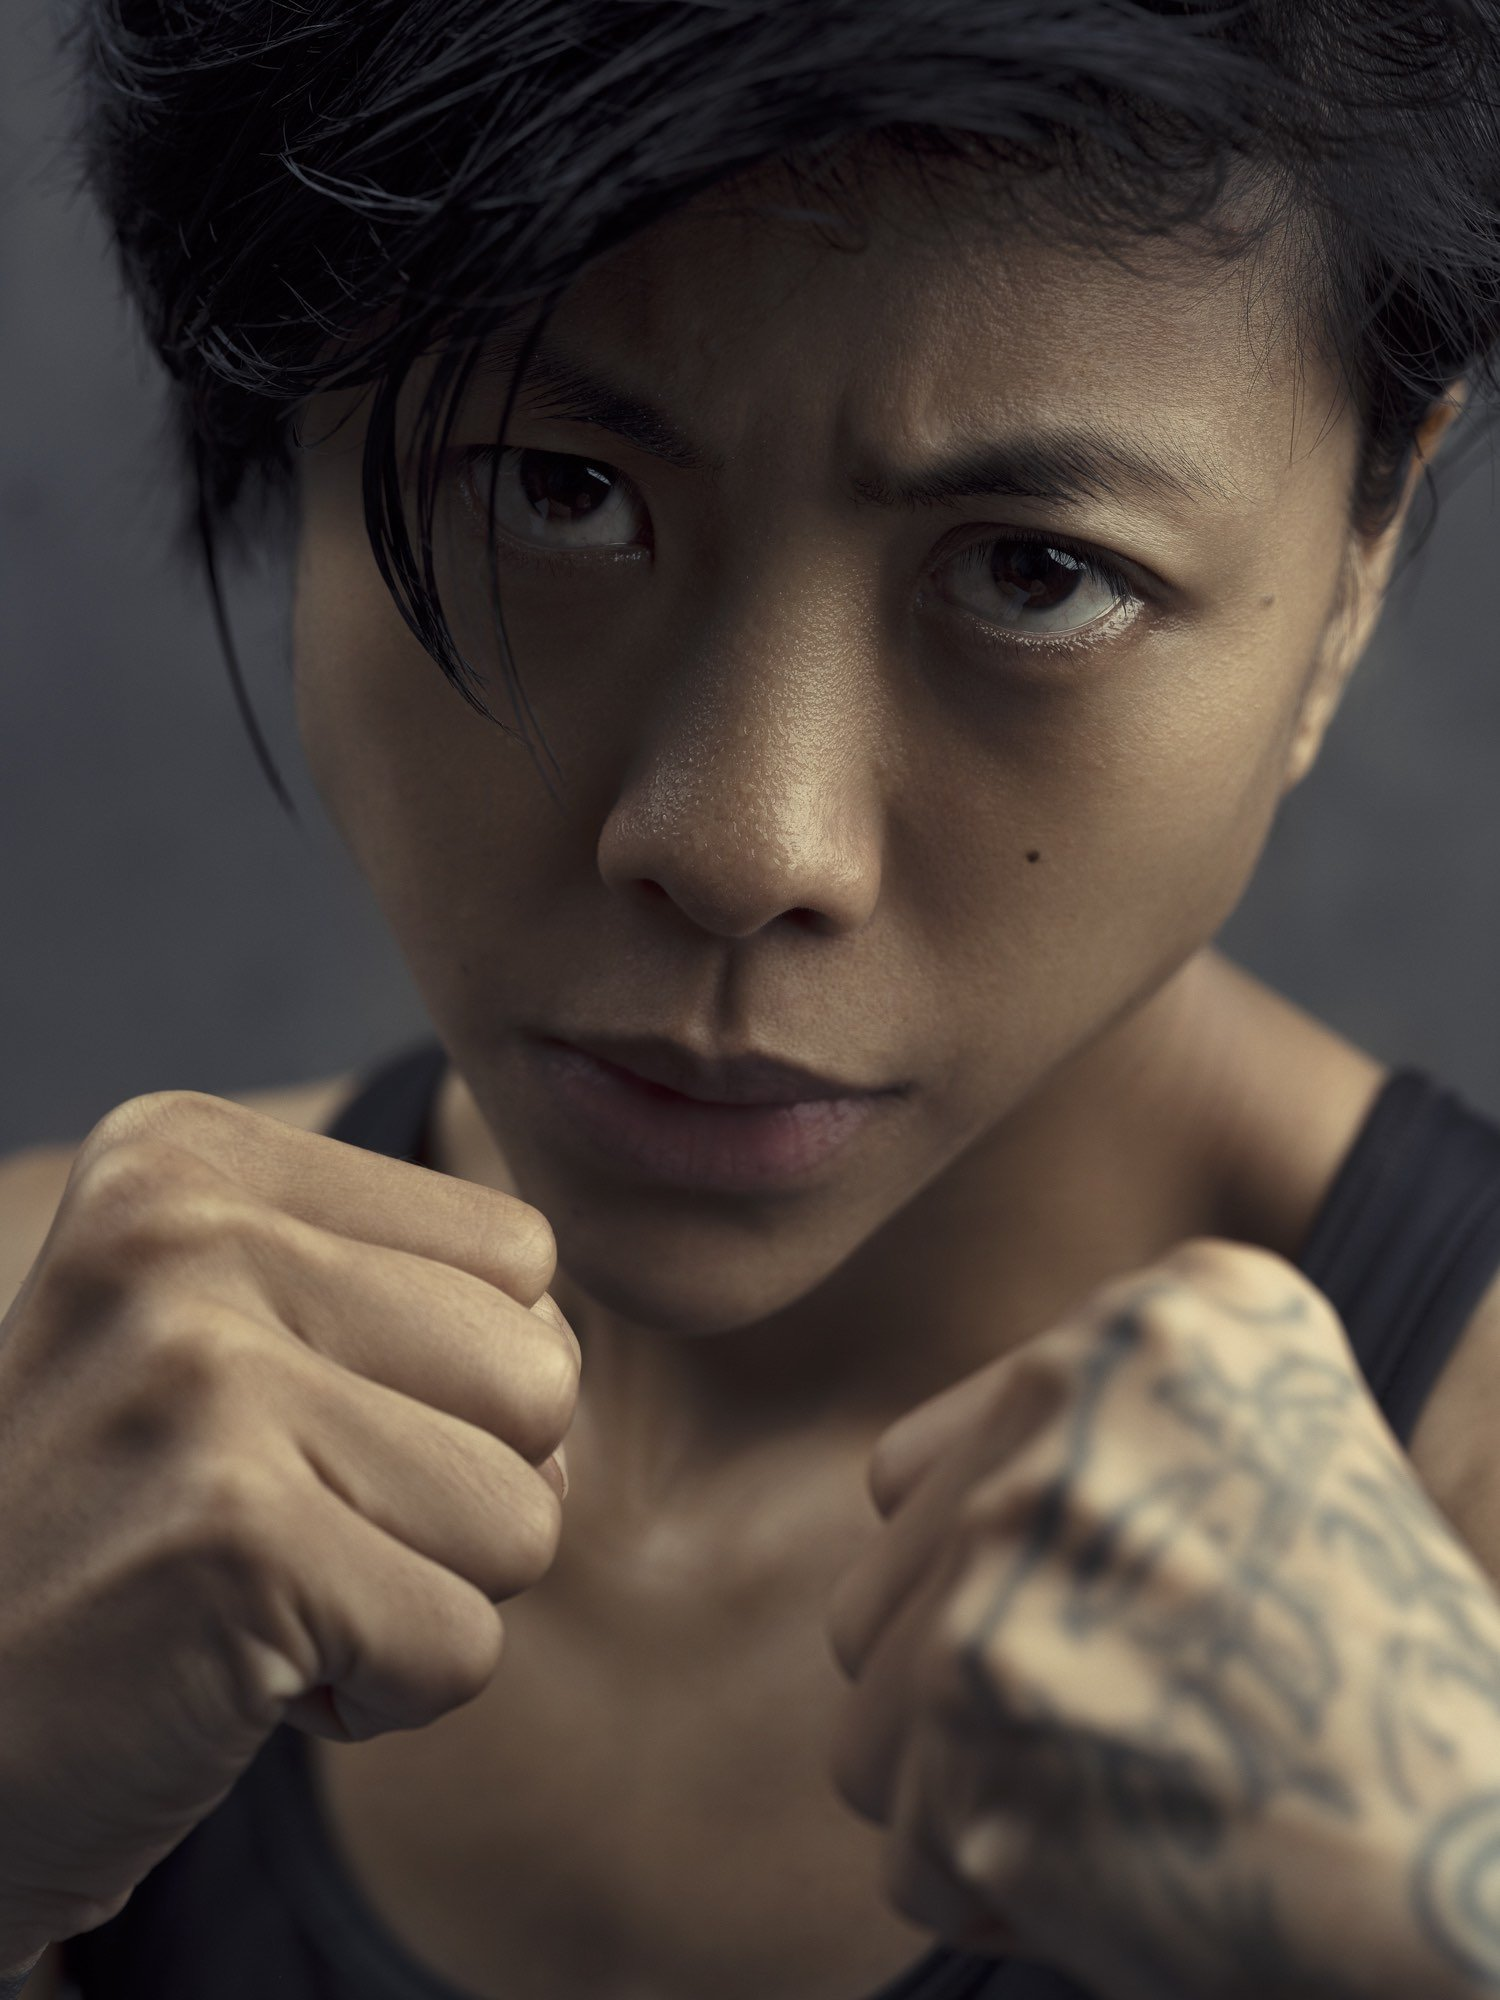 Beauty boxer boxing woman Commercial Editorial Portraiture Documentary Photographer fujifilm Director Singapore Jose Jeuland photography fashion street